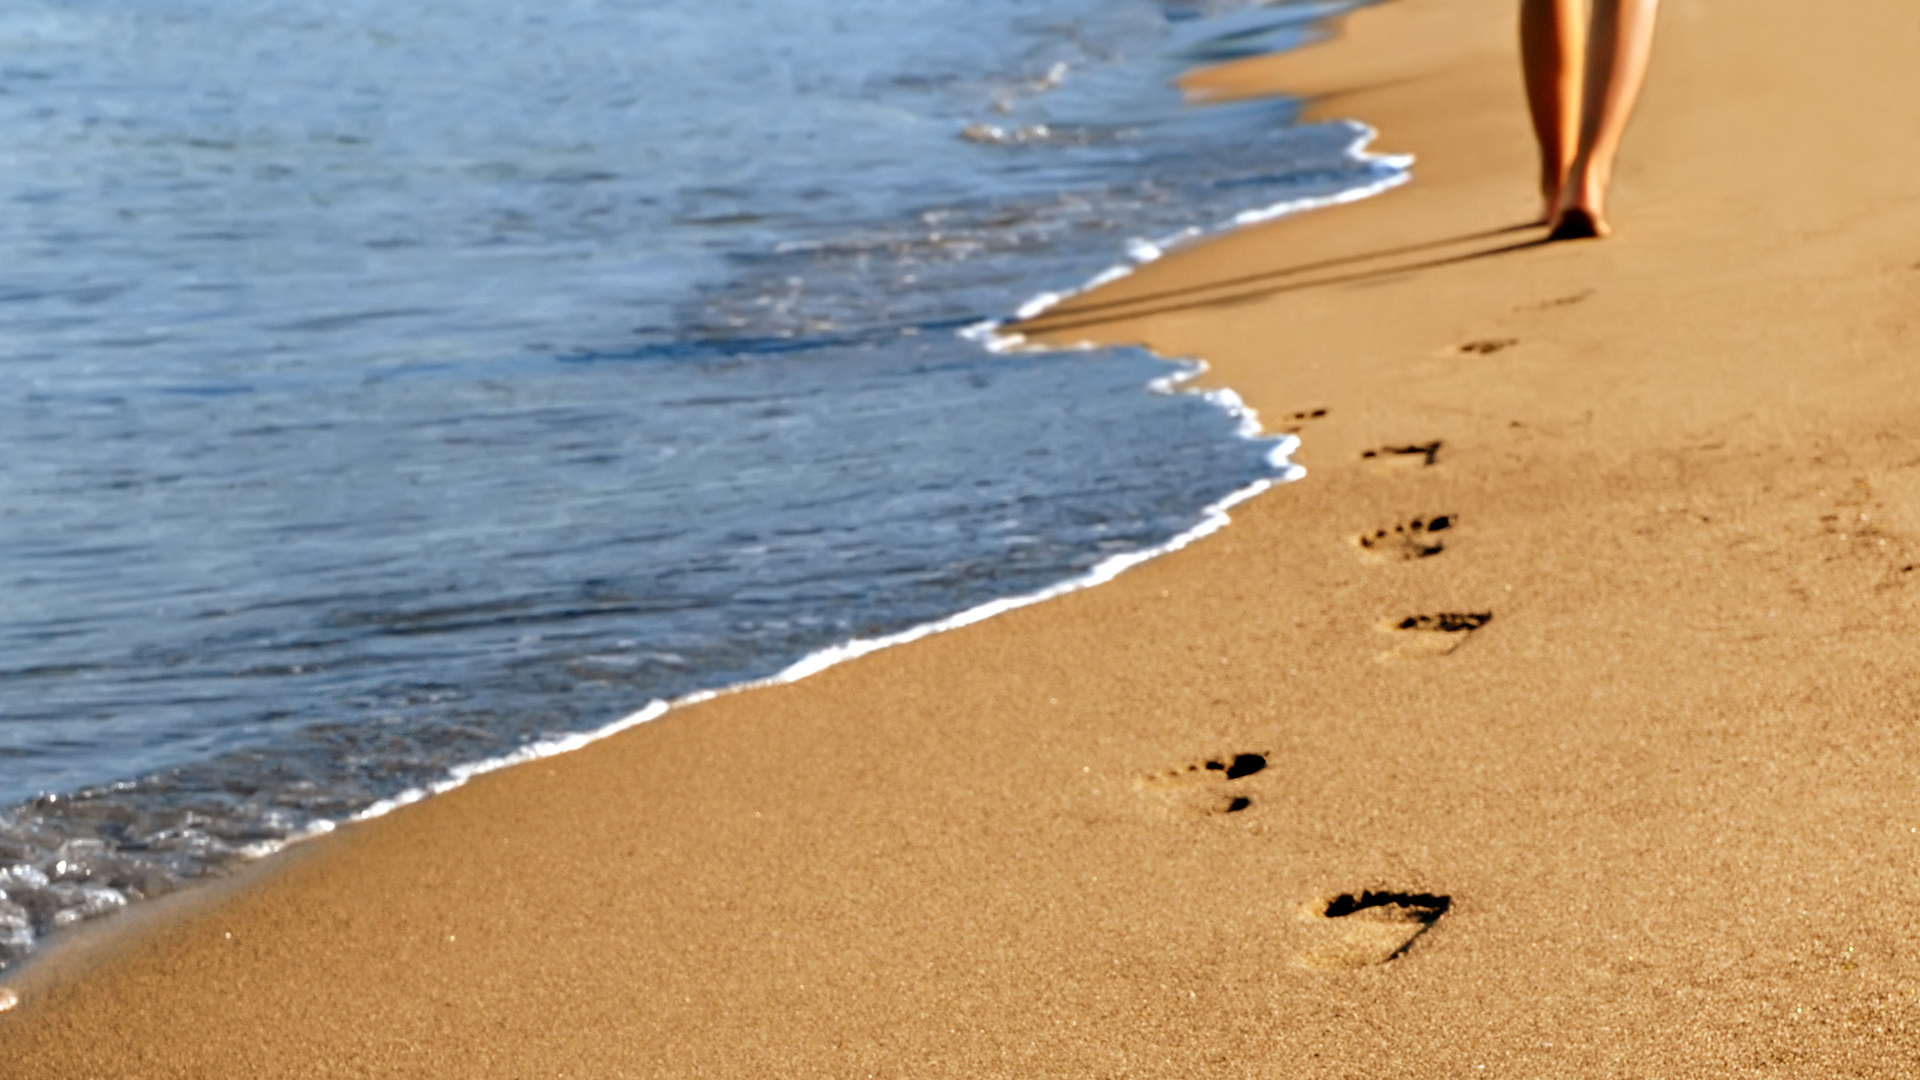 Free Footprints Wallpaper